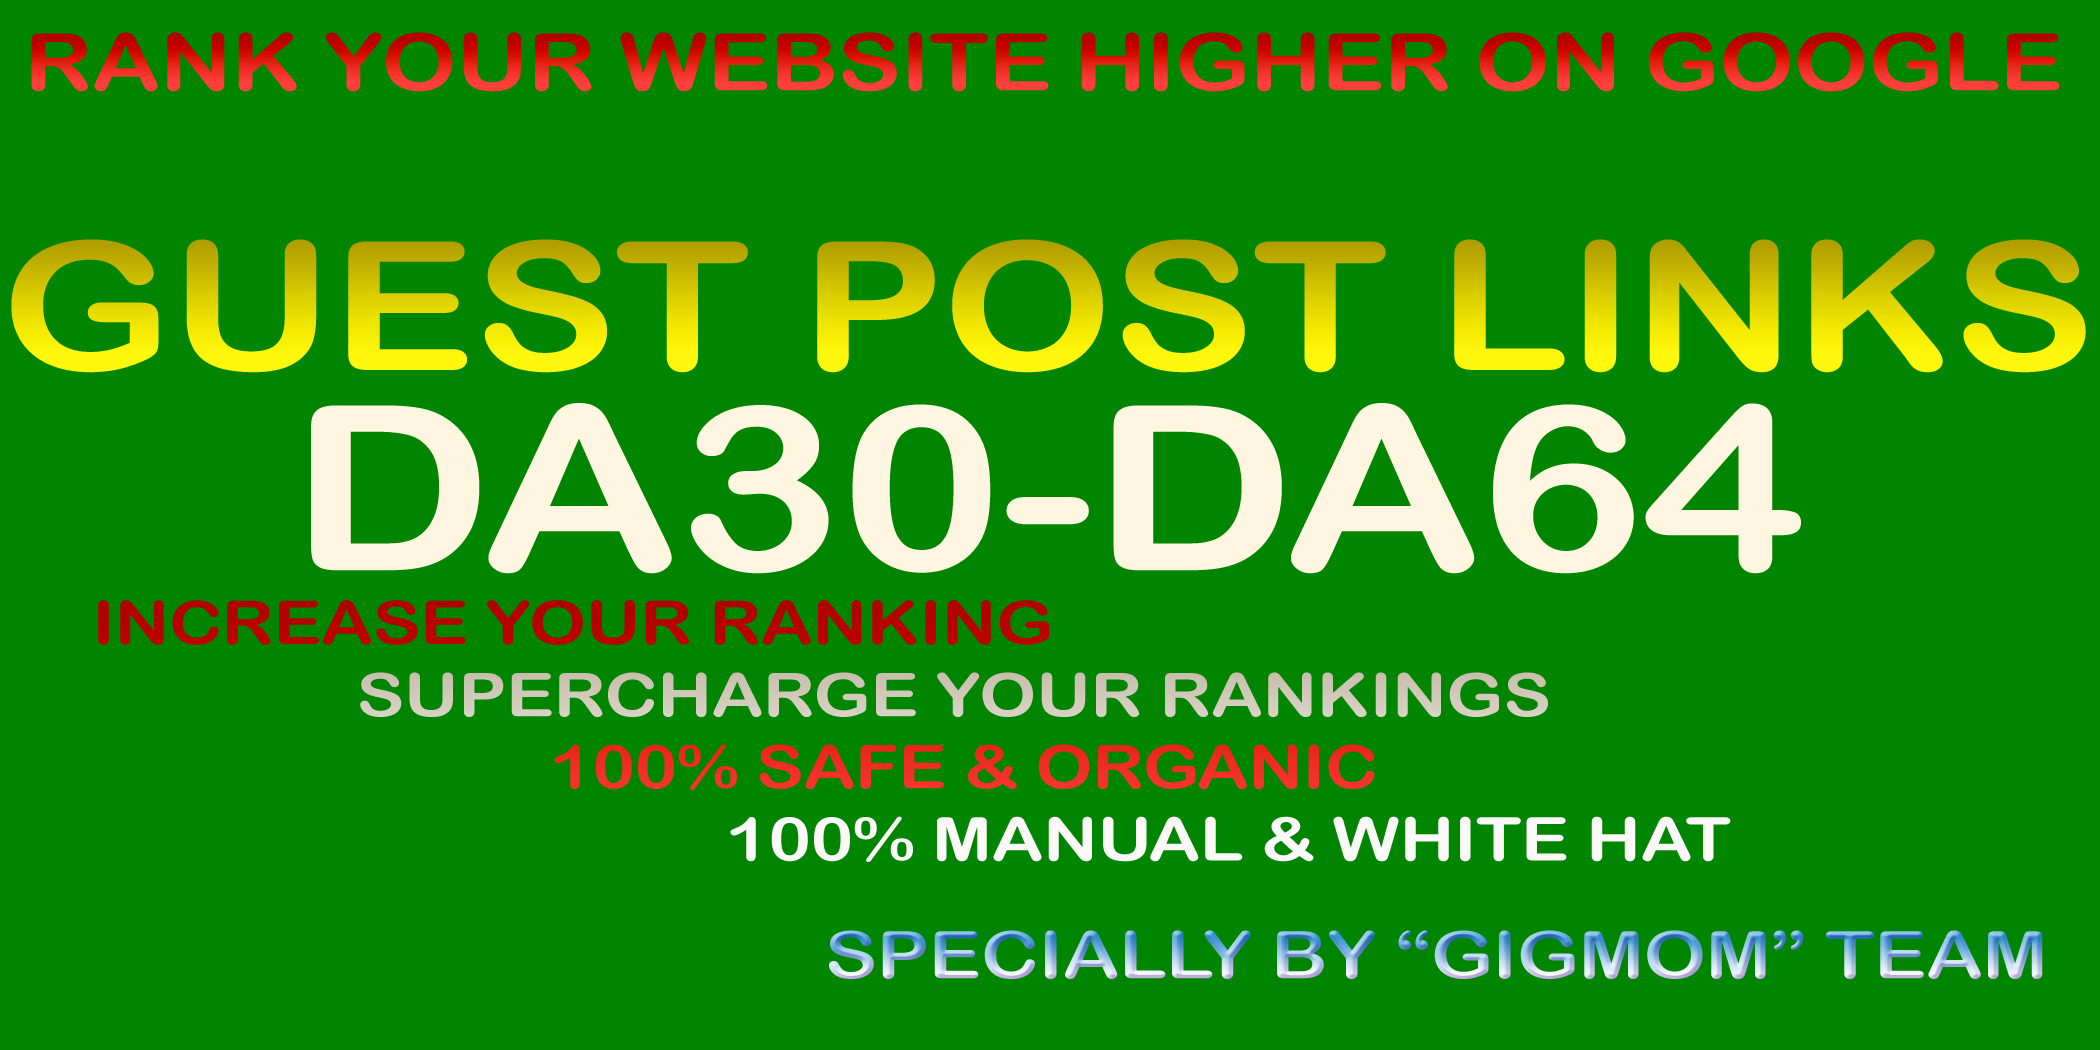 9 Guest Post Links DA30-DA64 High Visitor Blogs to Rank Higher